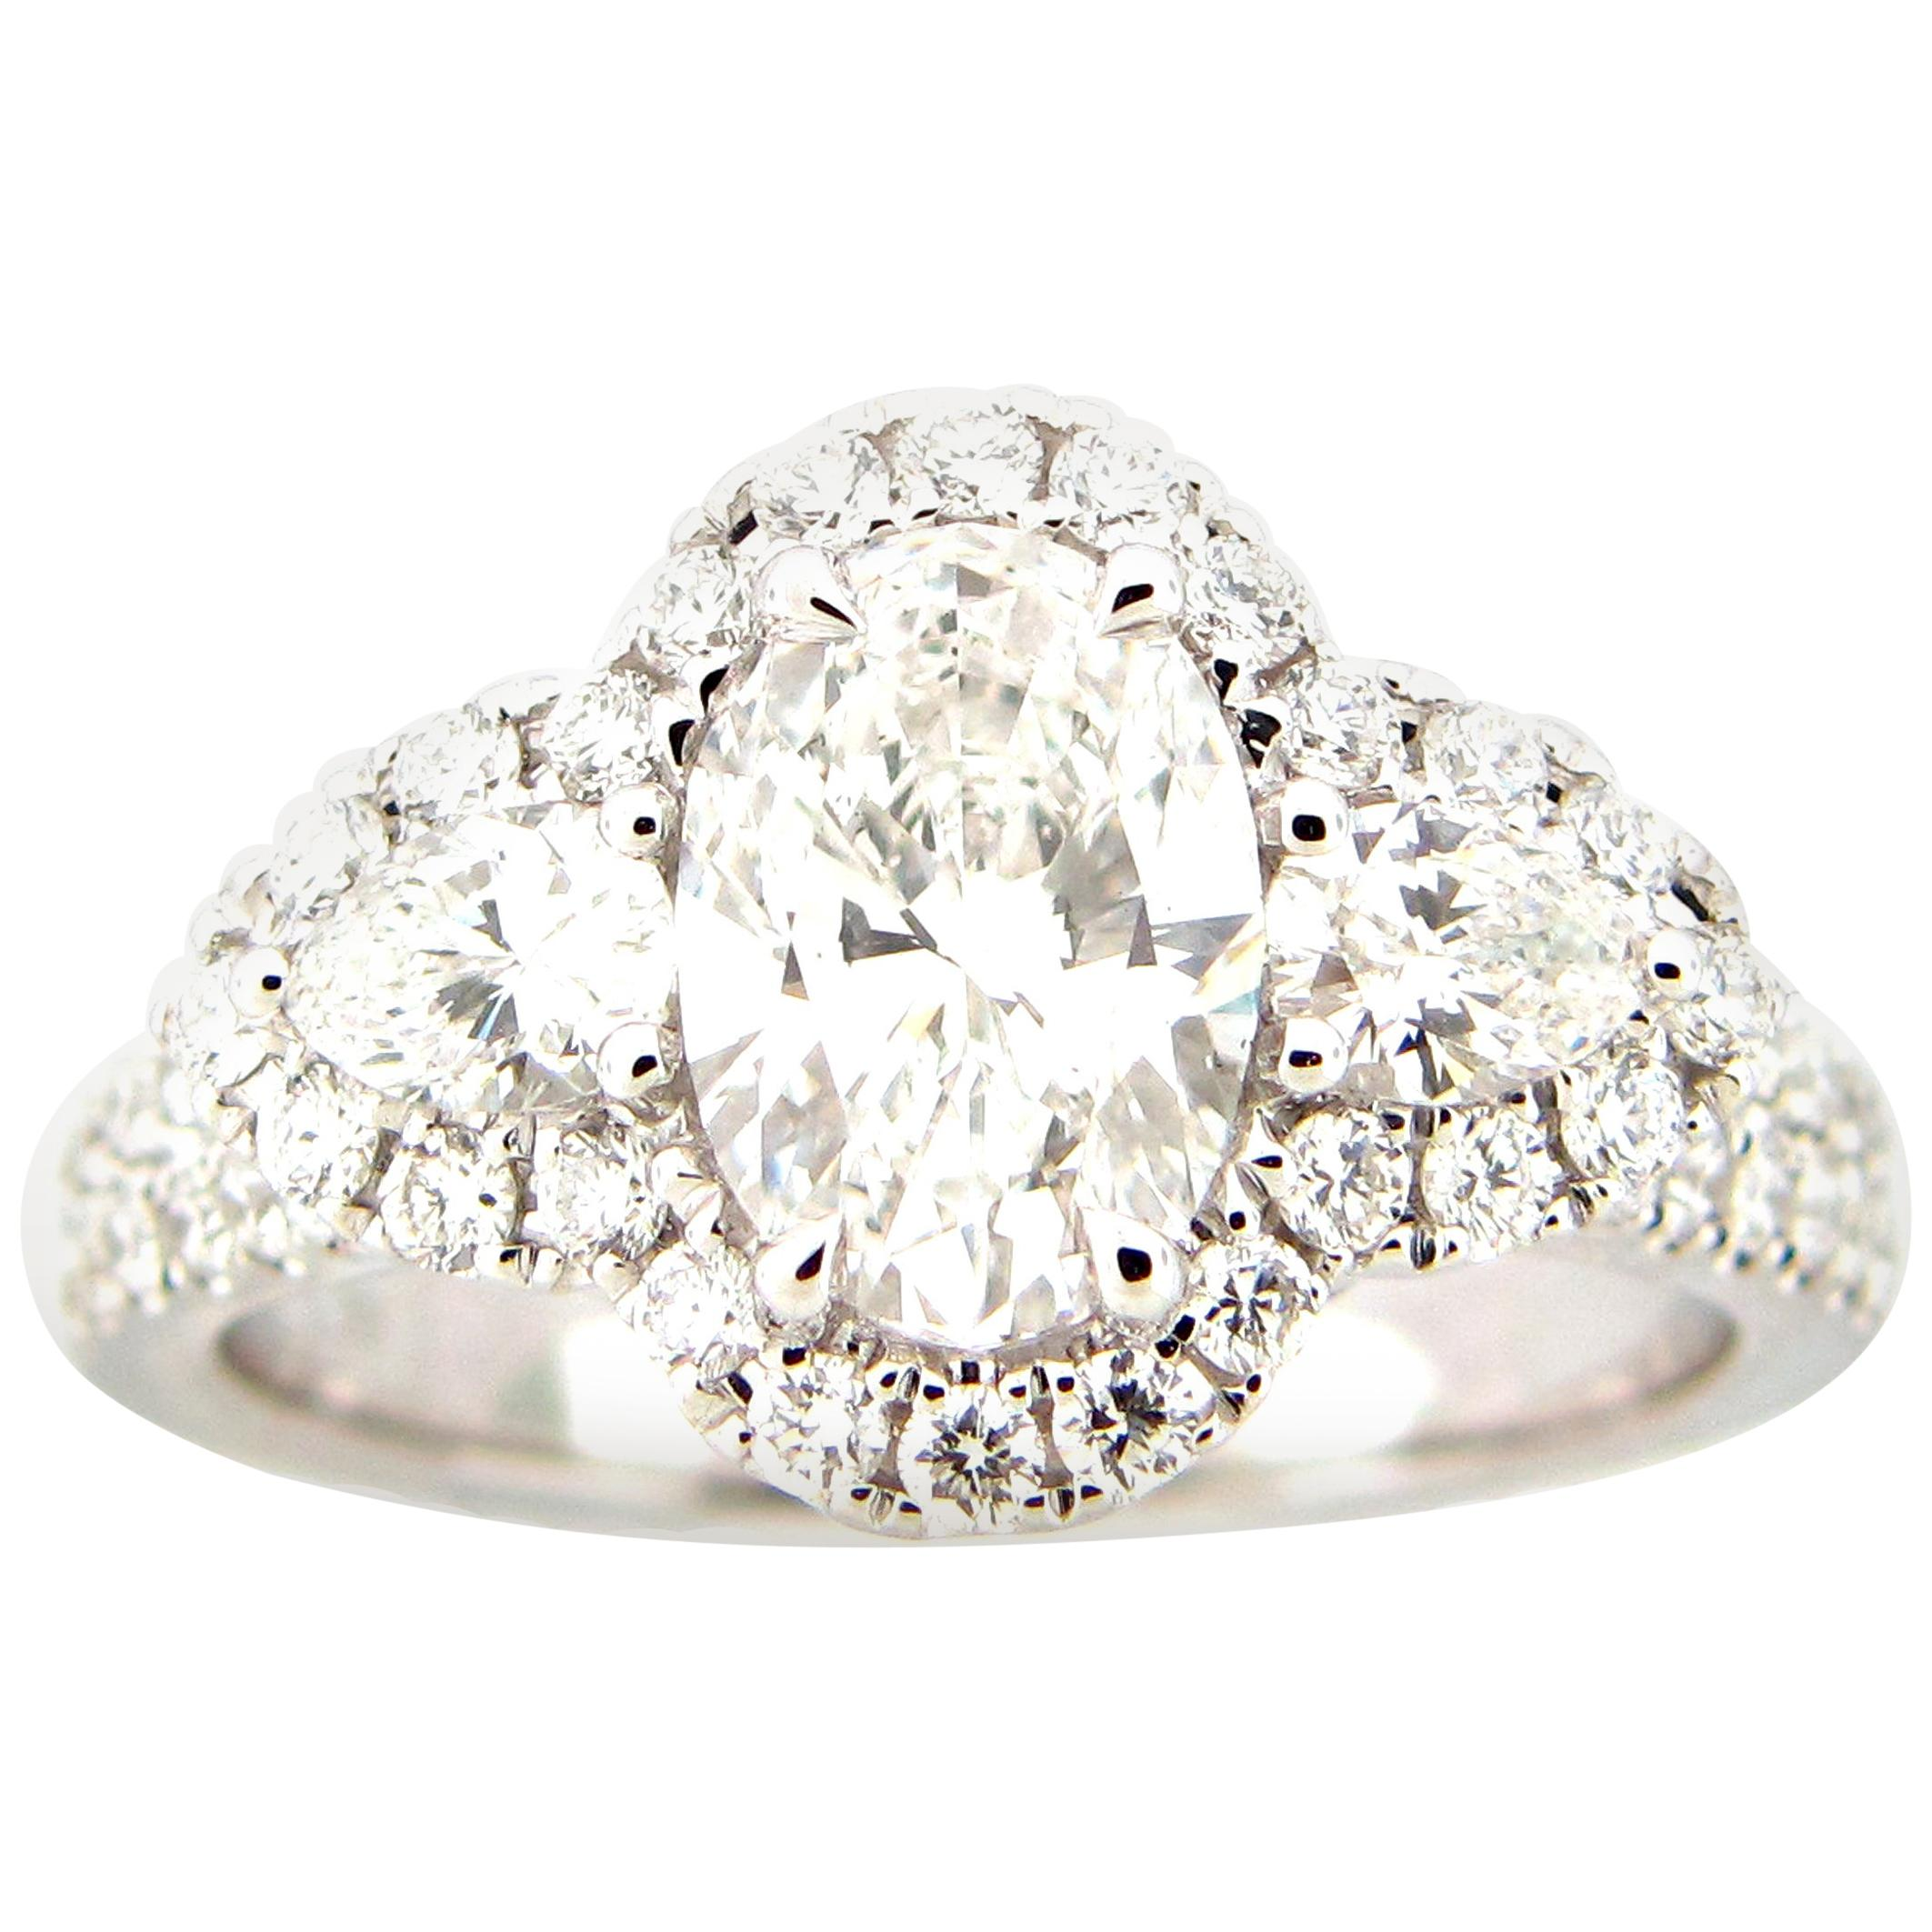 GIA Certified 1.39 Carat Oval Diamond Engagement Ring